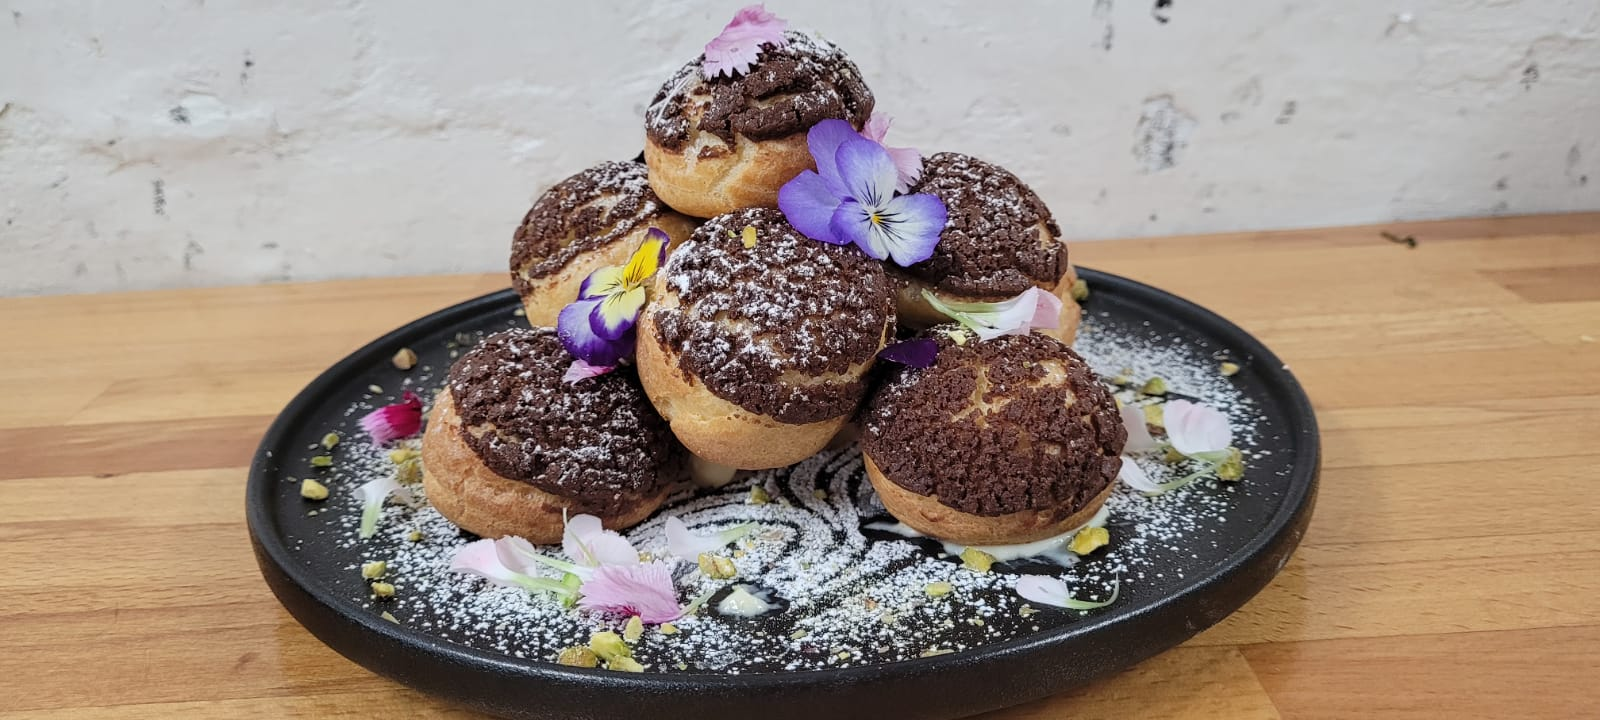 Desserts and Pastries Cooking Class